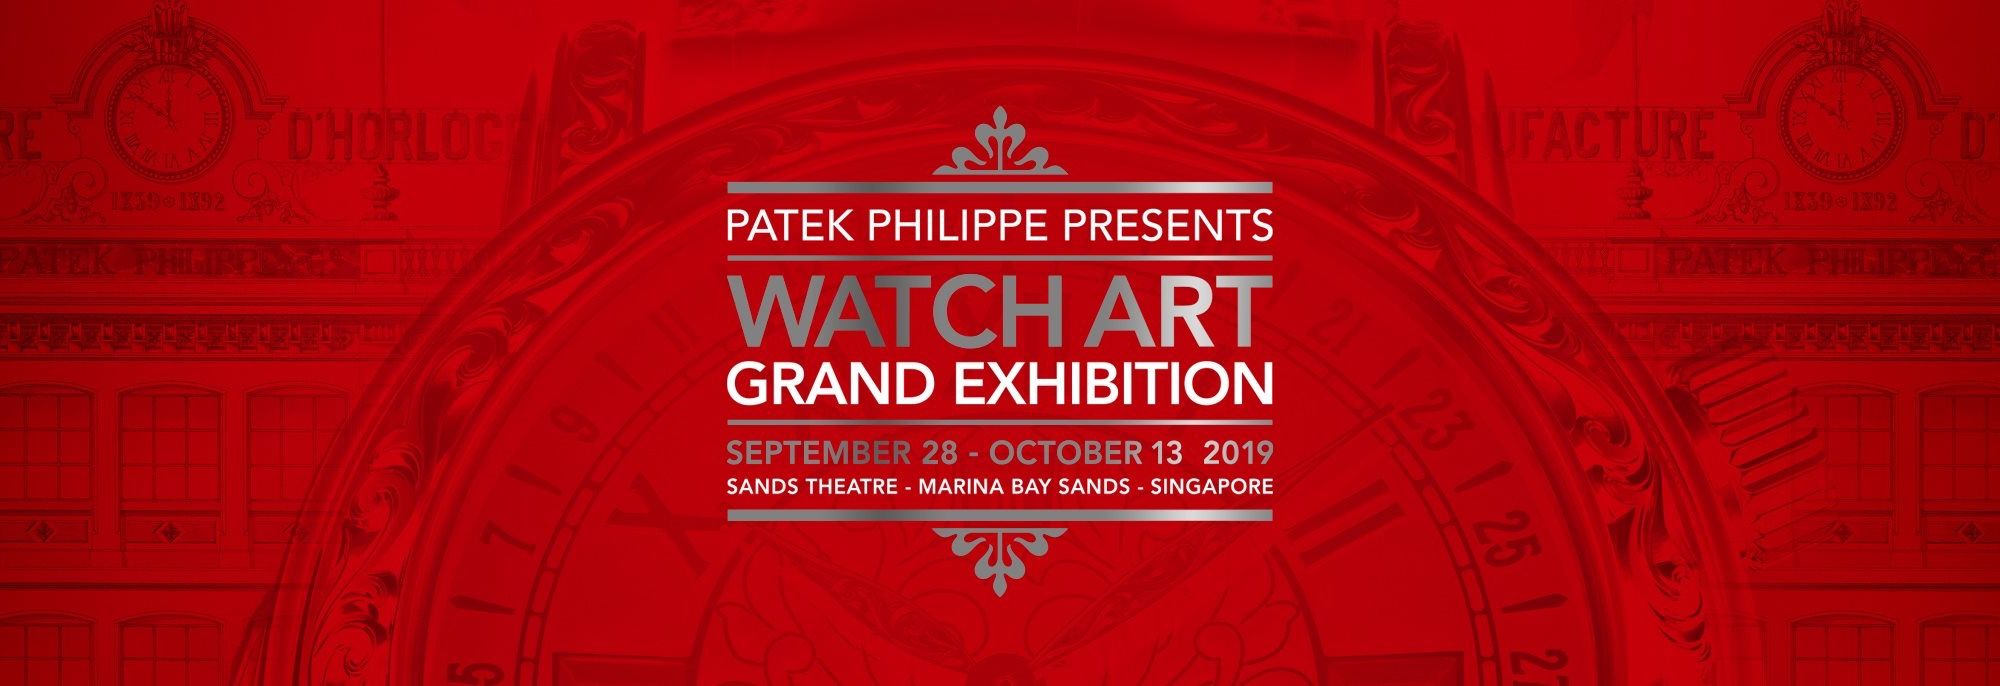 Patek Philippe viaja a Singapore - Watch Art Grand Exhibition Singapore 2019 - cover2